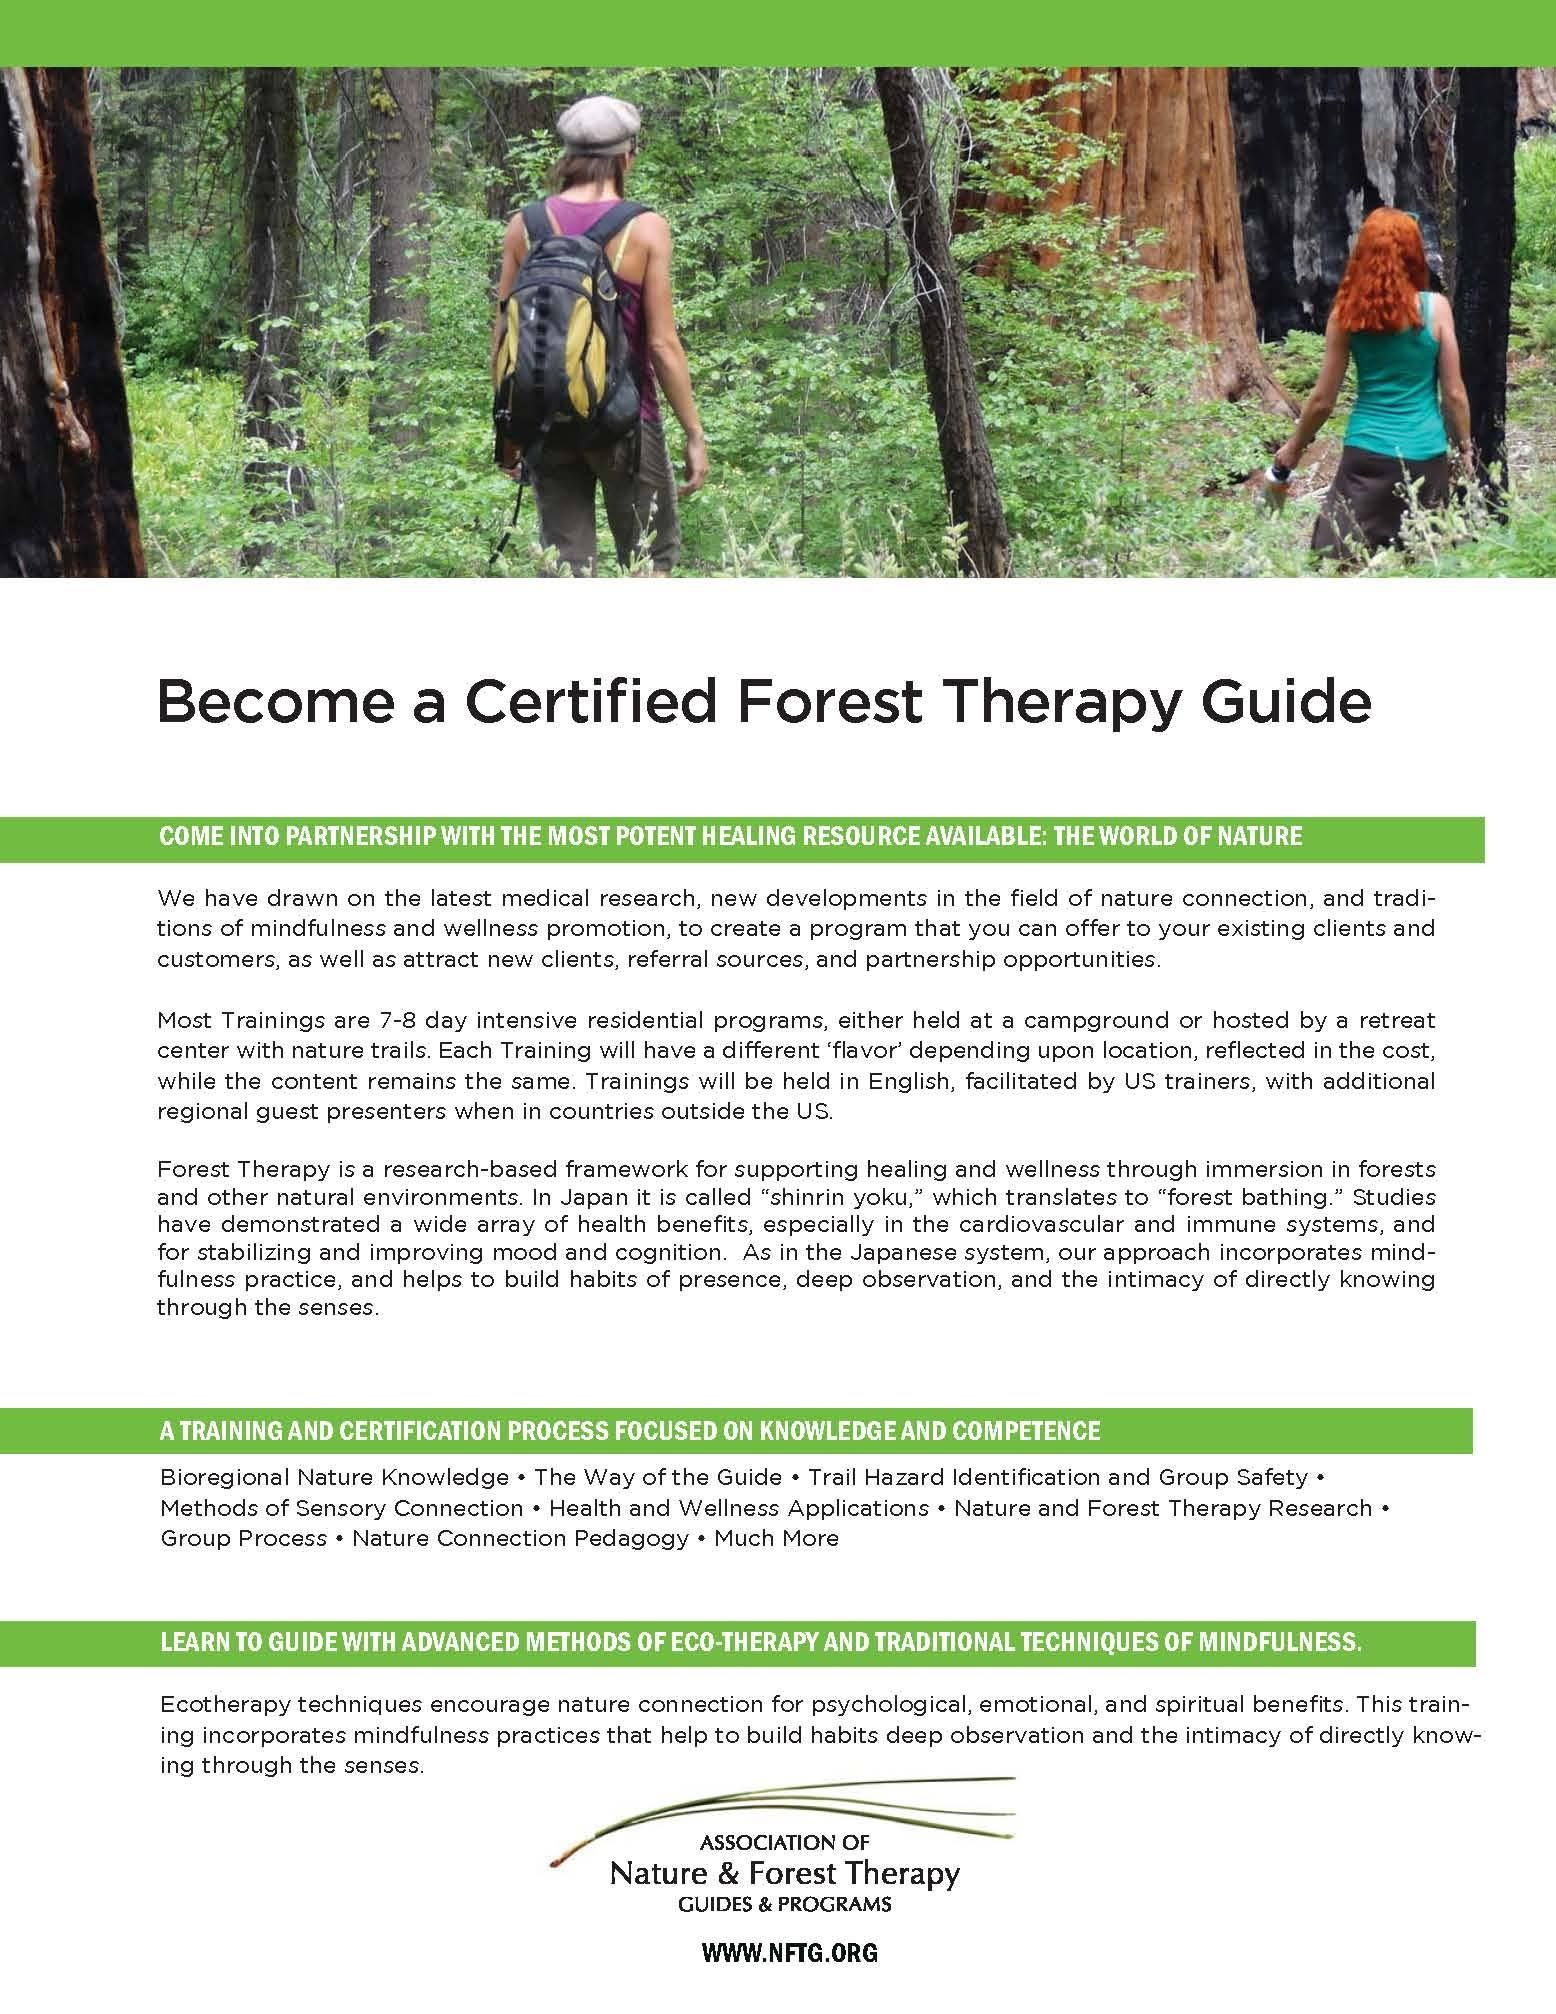 After learning about forest bathing, this was interesting to come across. It could be a cool opportunity to teach people how forests can be restorative to health